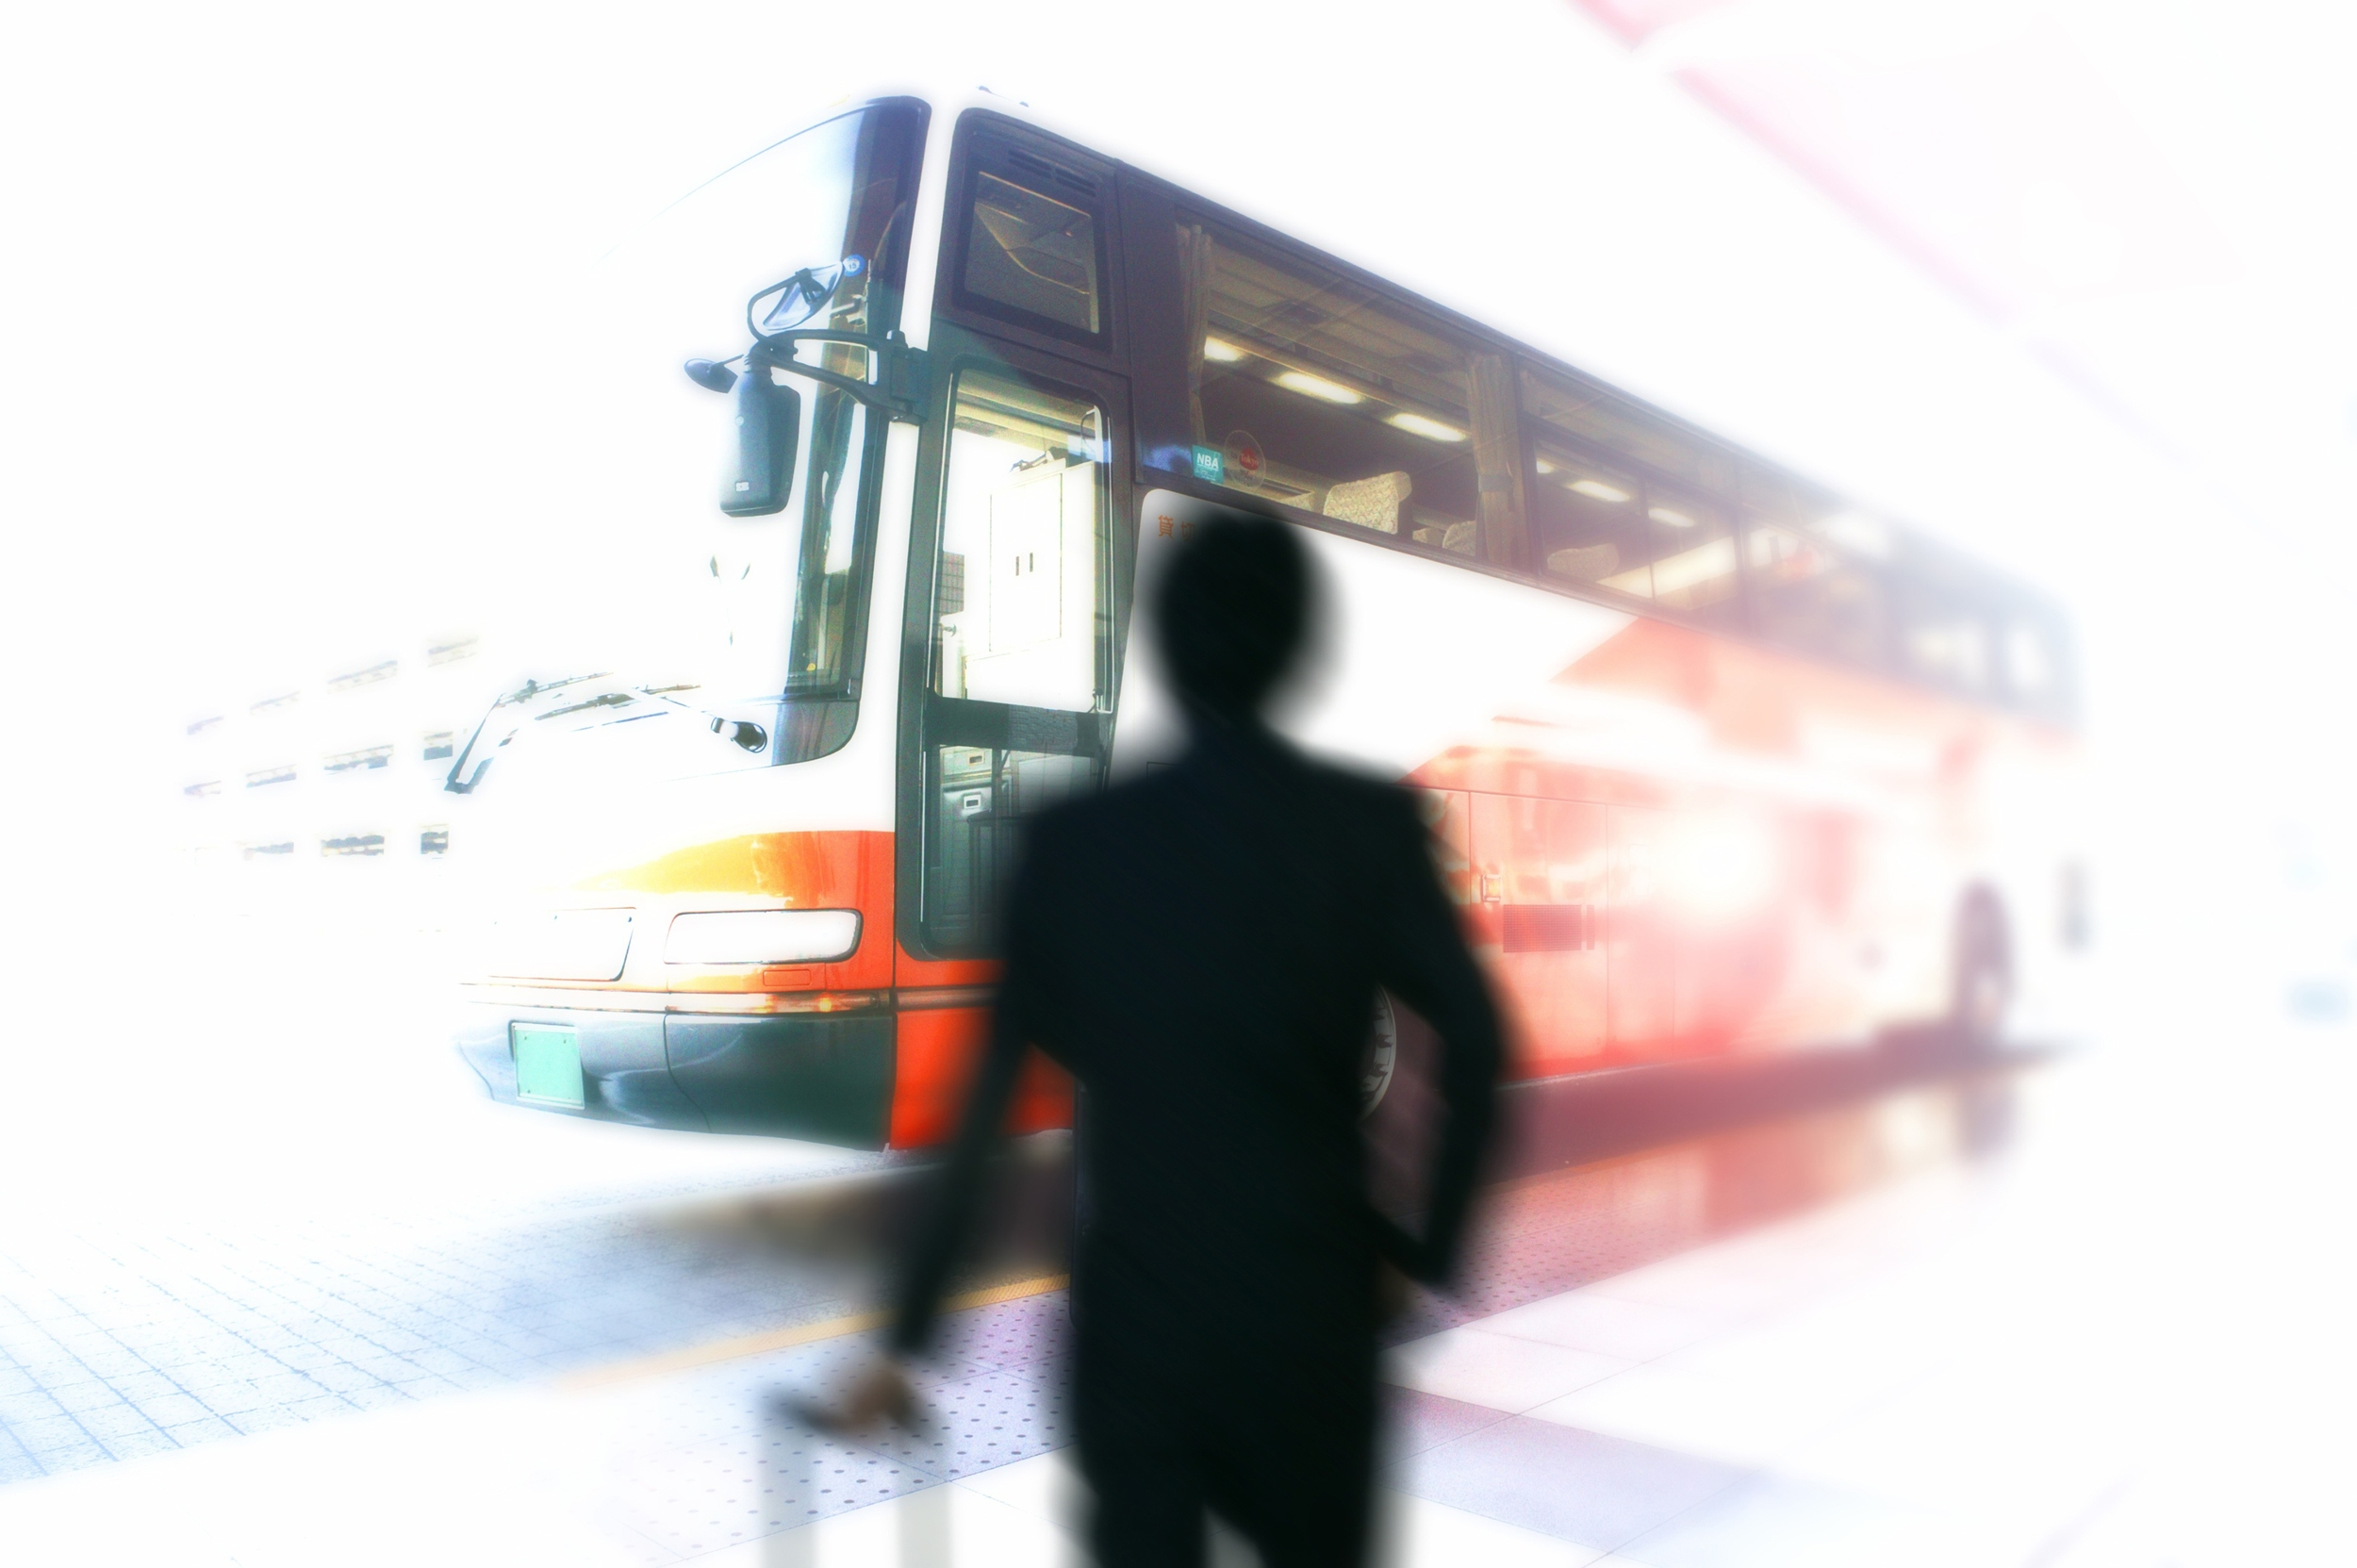 Every year, around 25,000 people are injured in bus accidents.